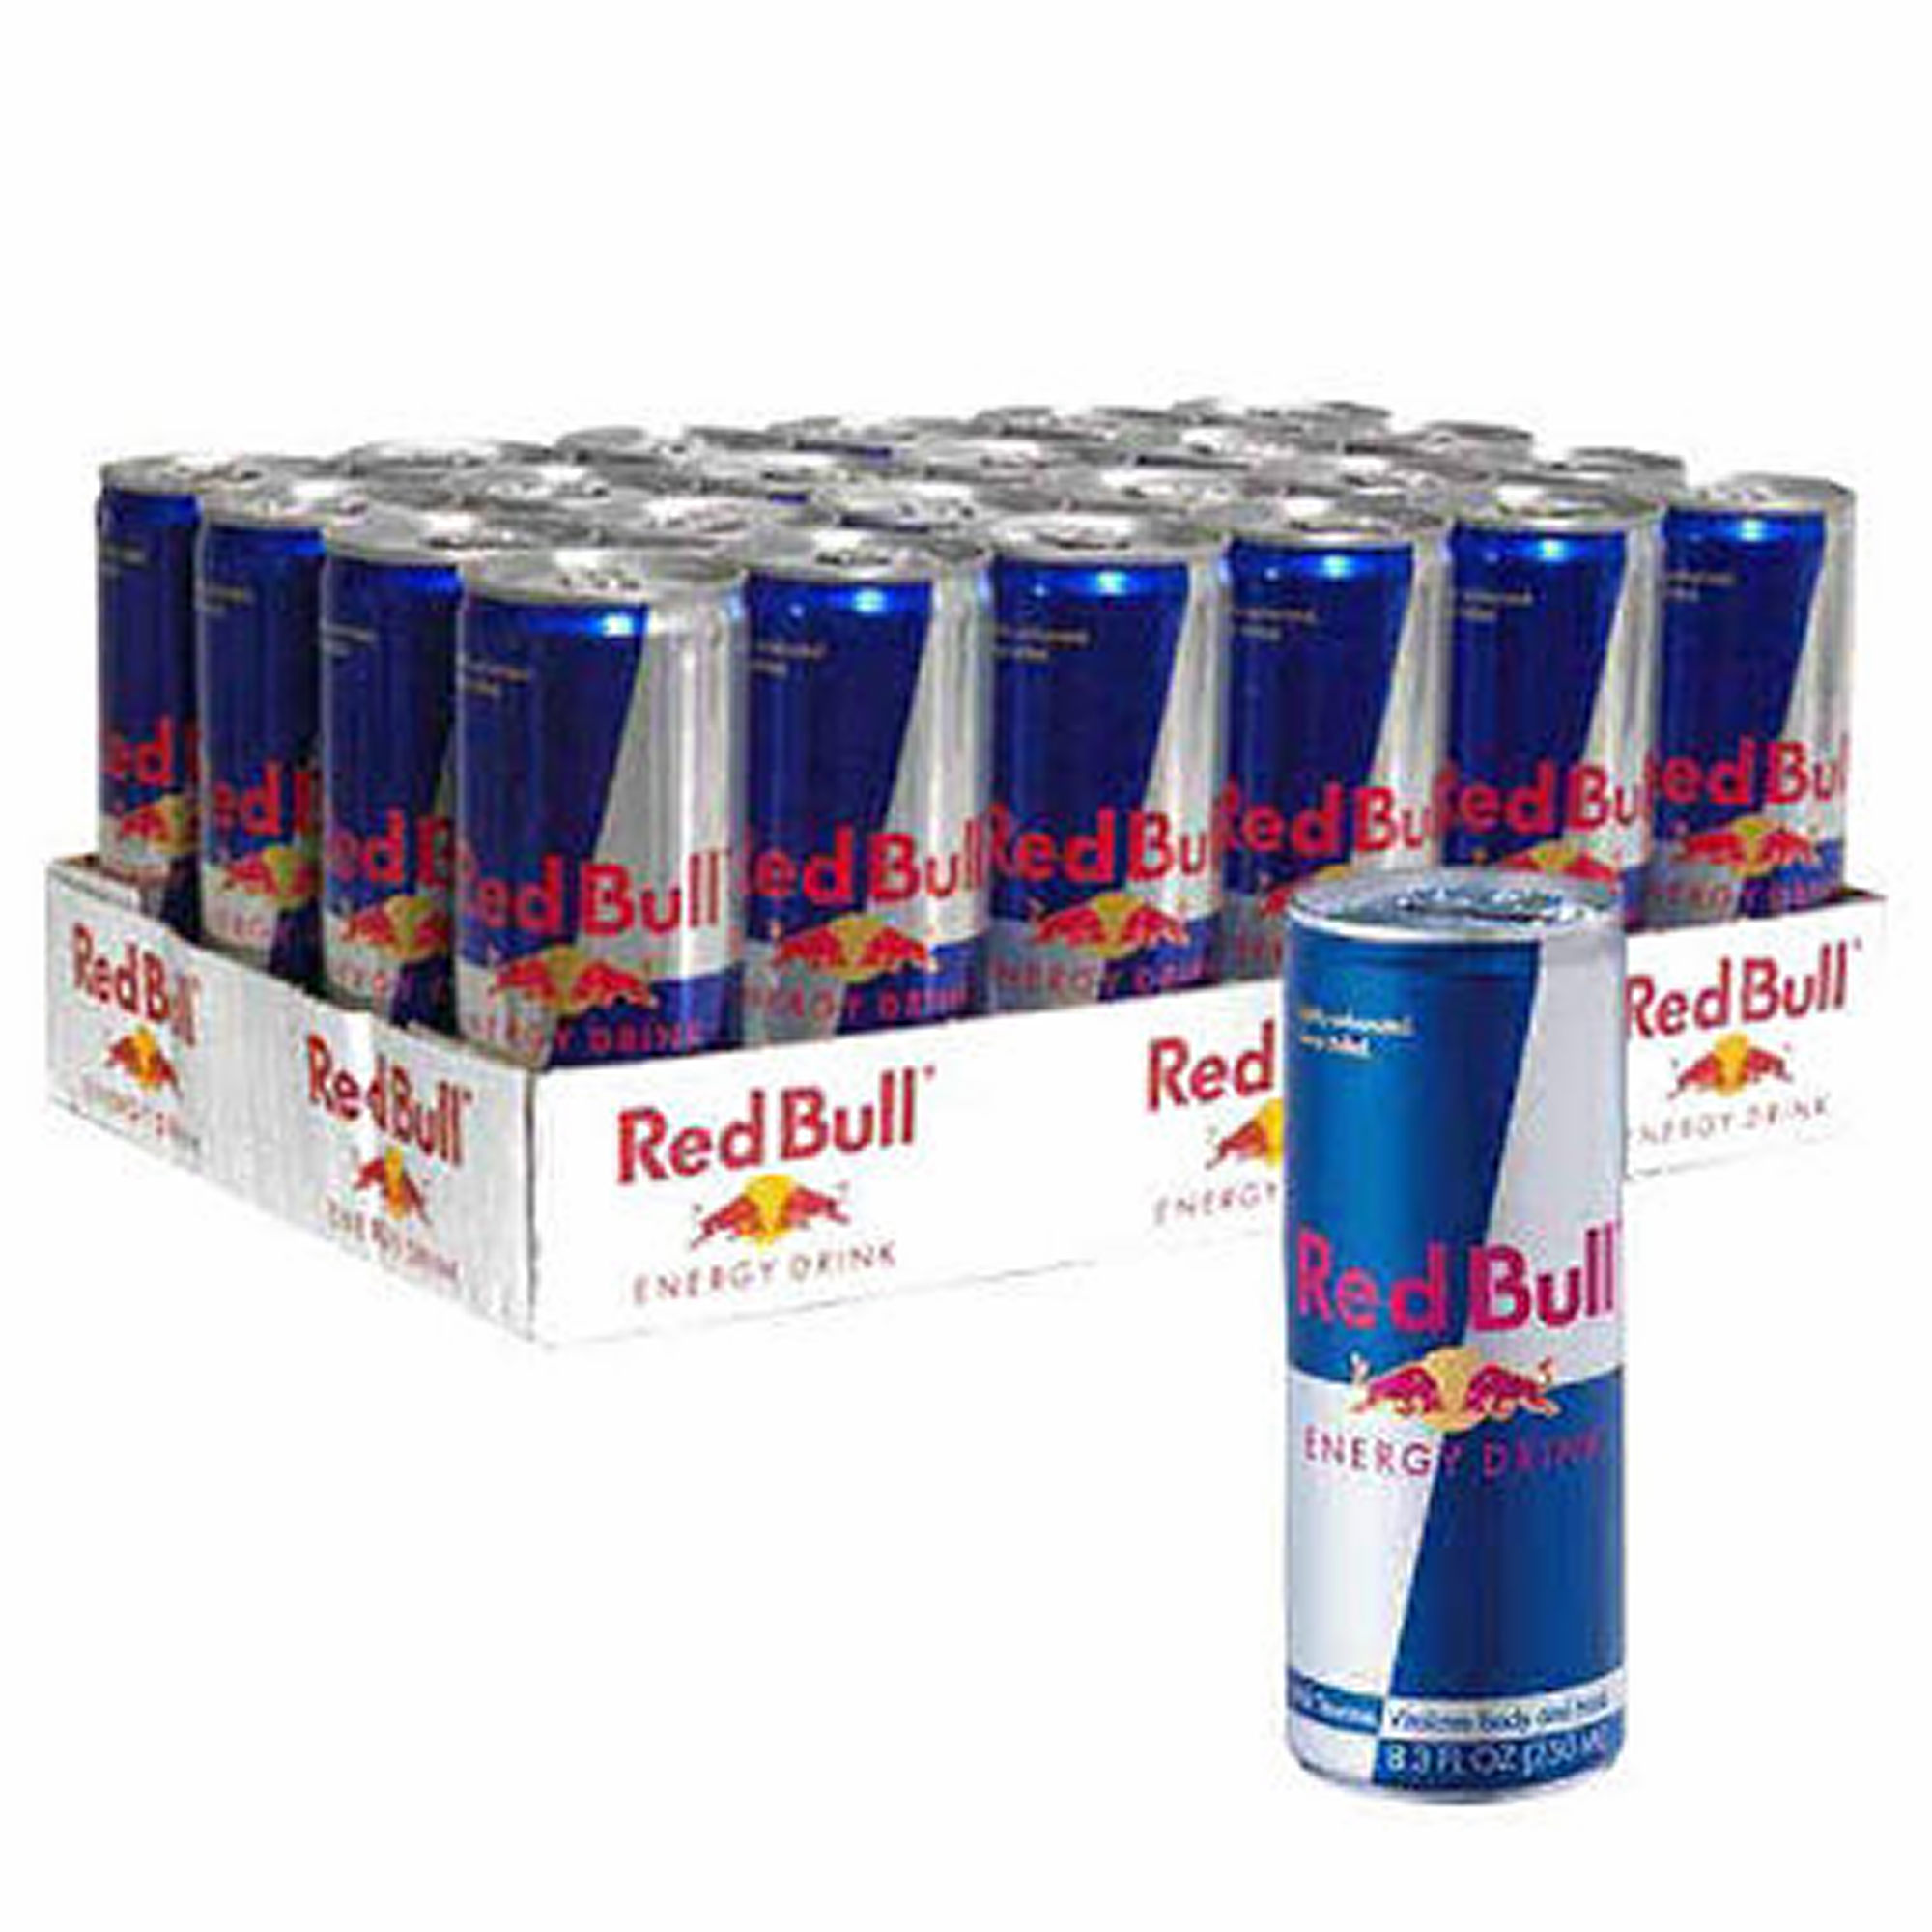 Red Bull clipart 8.4 oz Drink oz 24 Wholesale 4